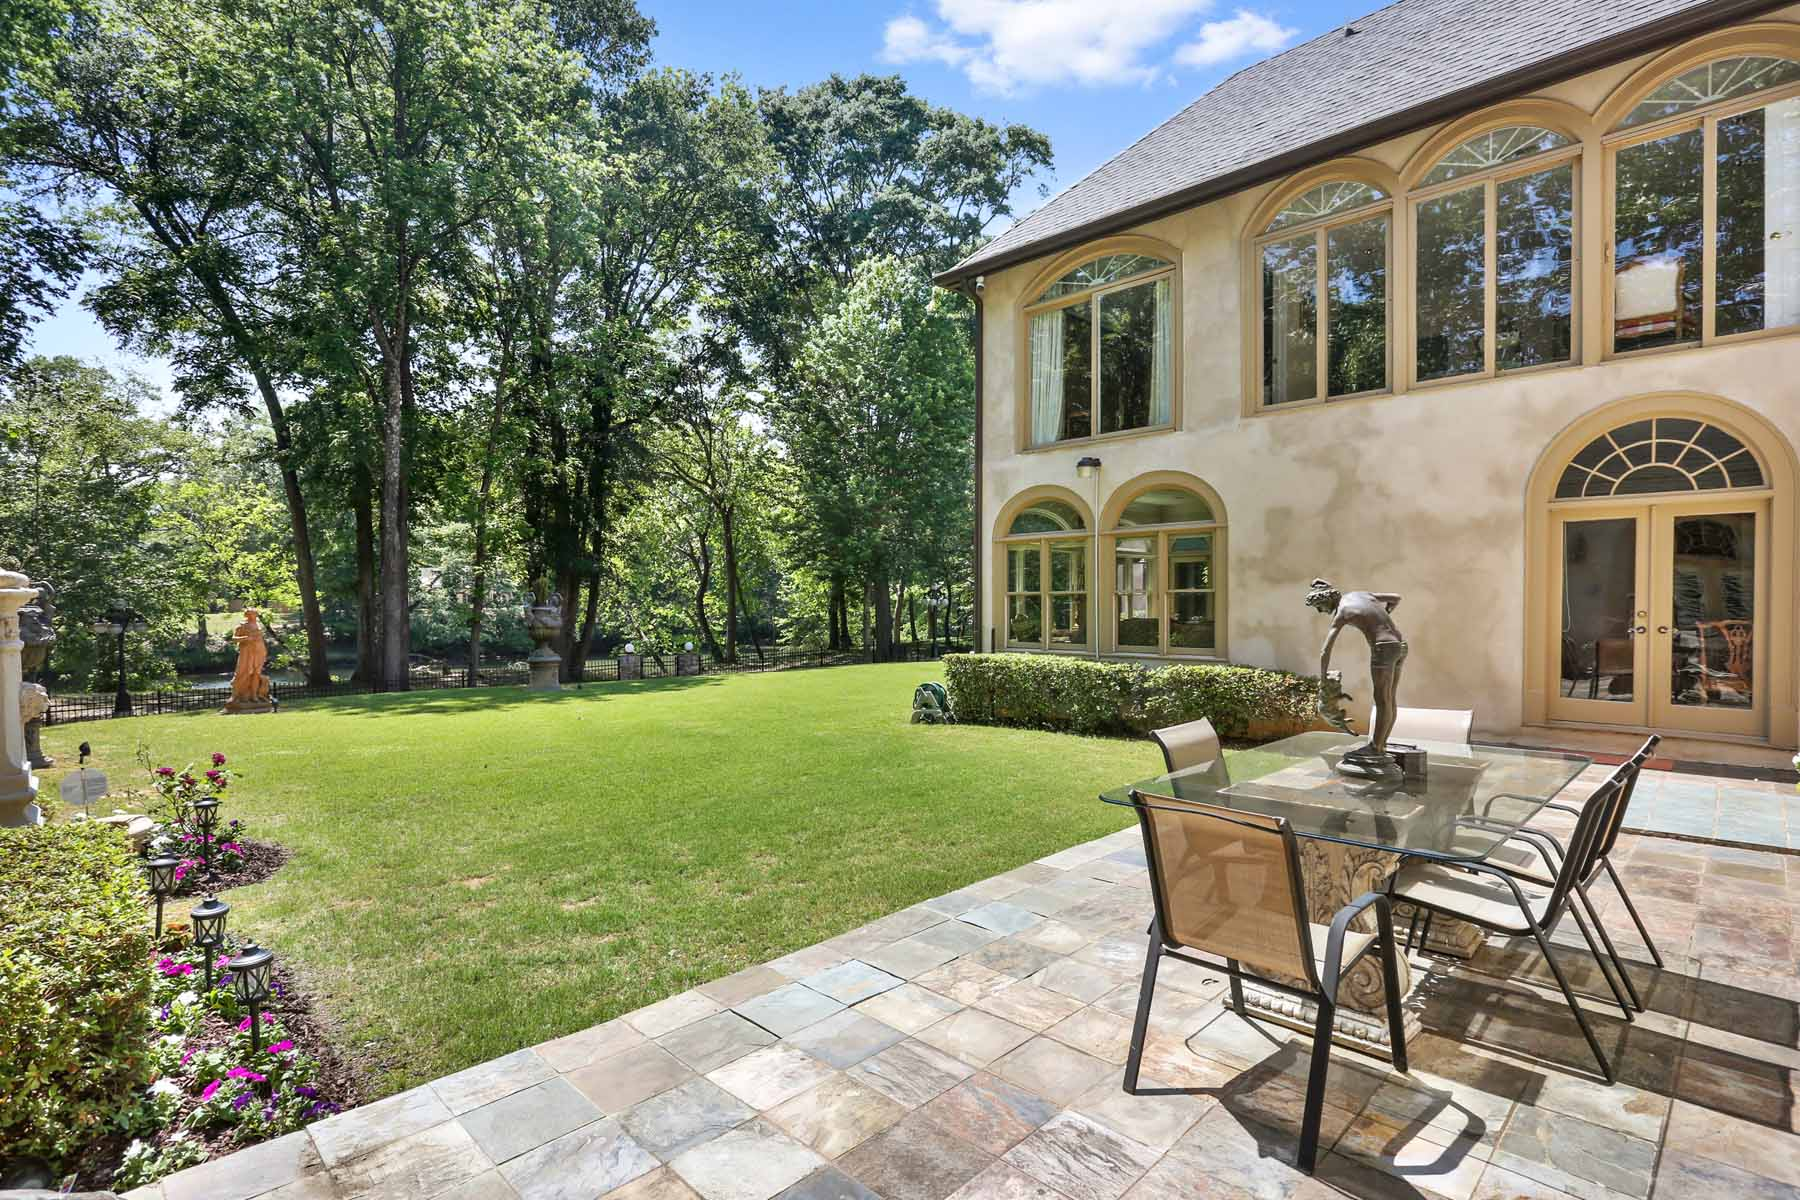 Additional photo for property listing at Extraordinary Sprawling Estate on Chattahoochee River 5315 Chelsen Wood Drive Johns Creek, Georgia 30097 United States